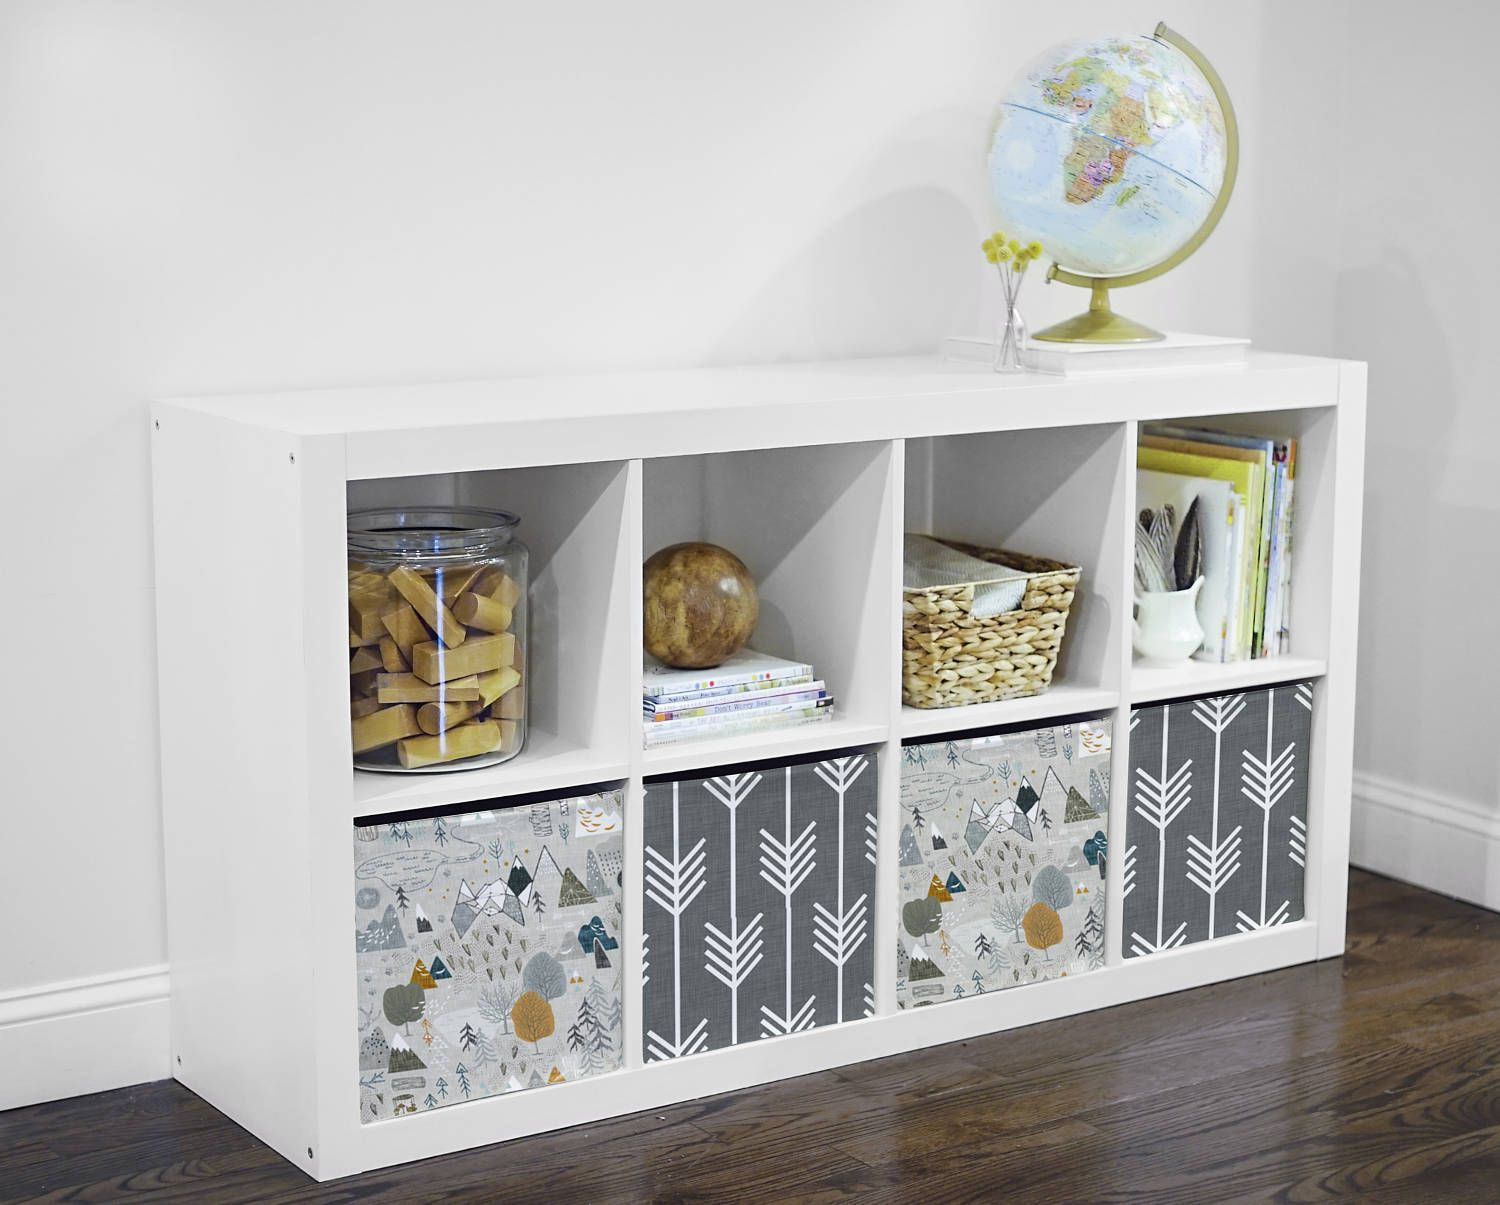 Personalize Your Ikea Storage Unit With Our Fun Fabric Covers